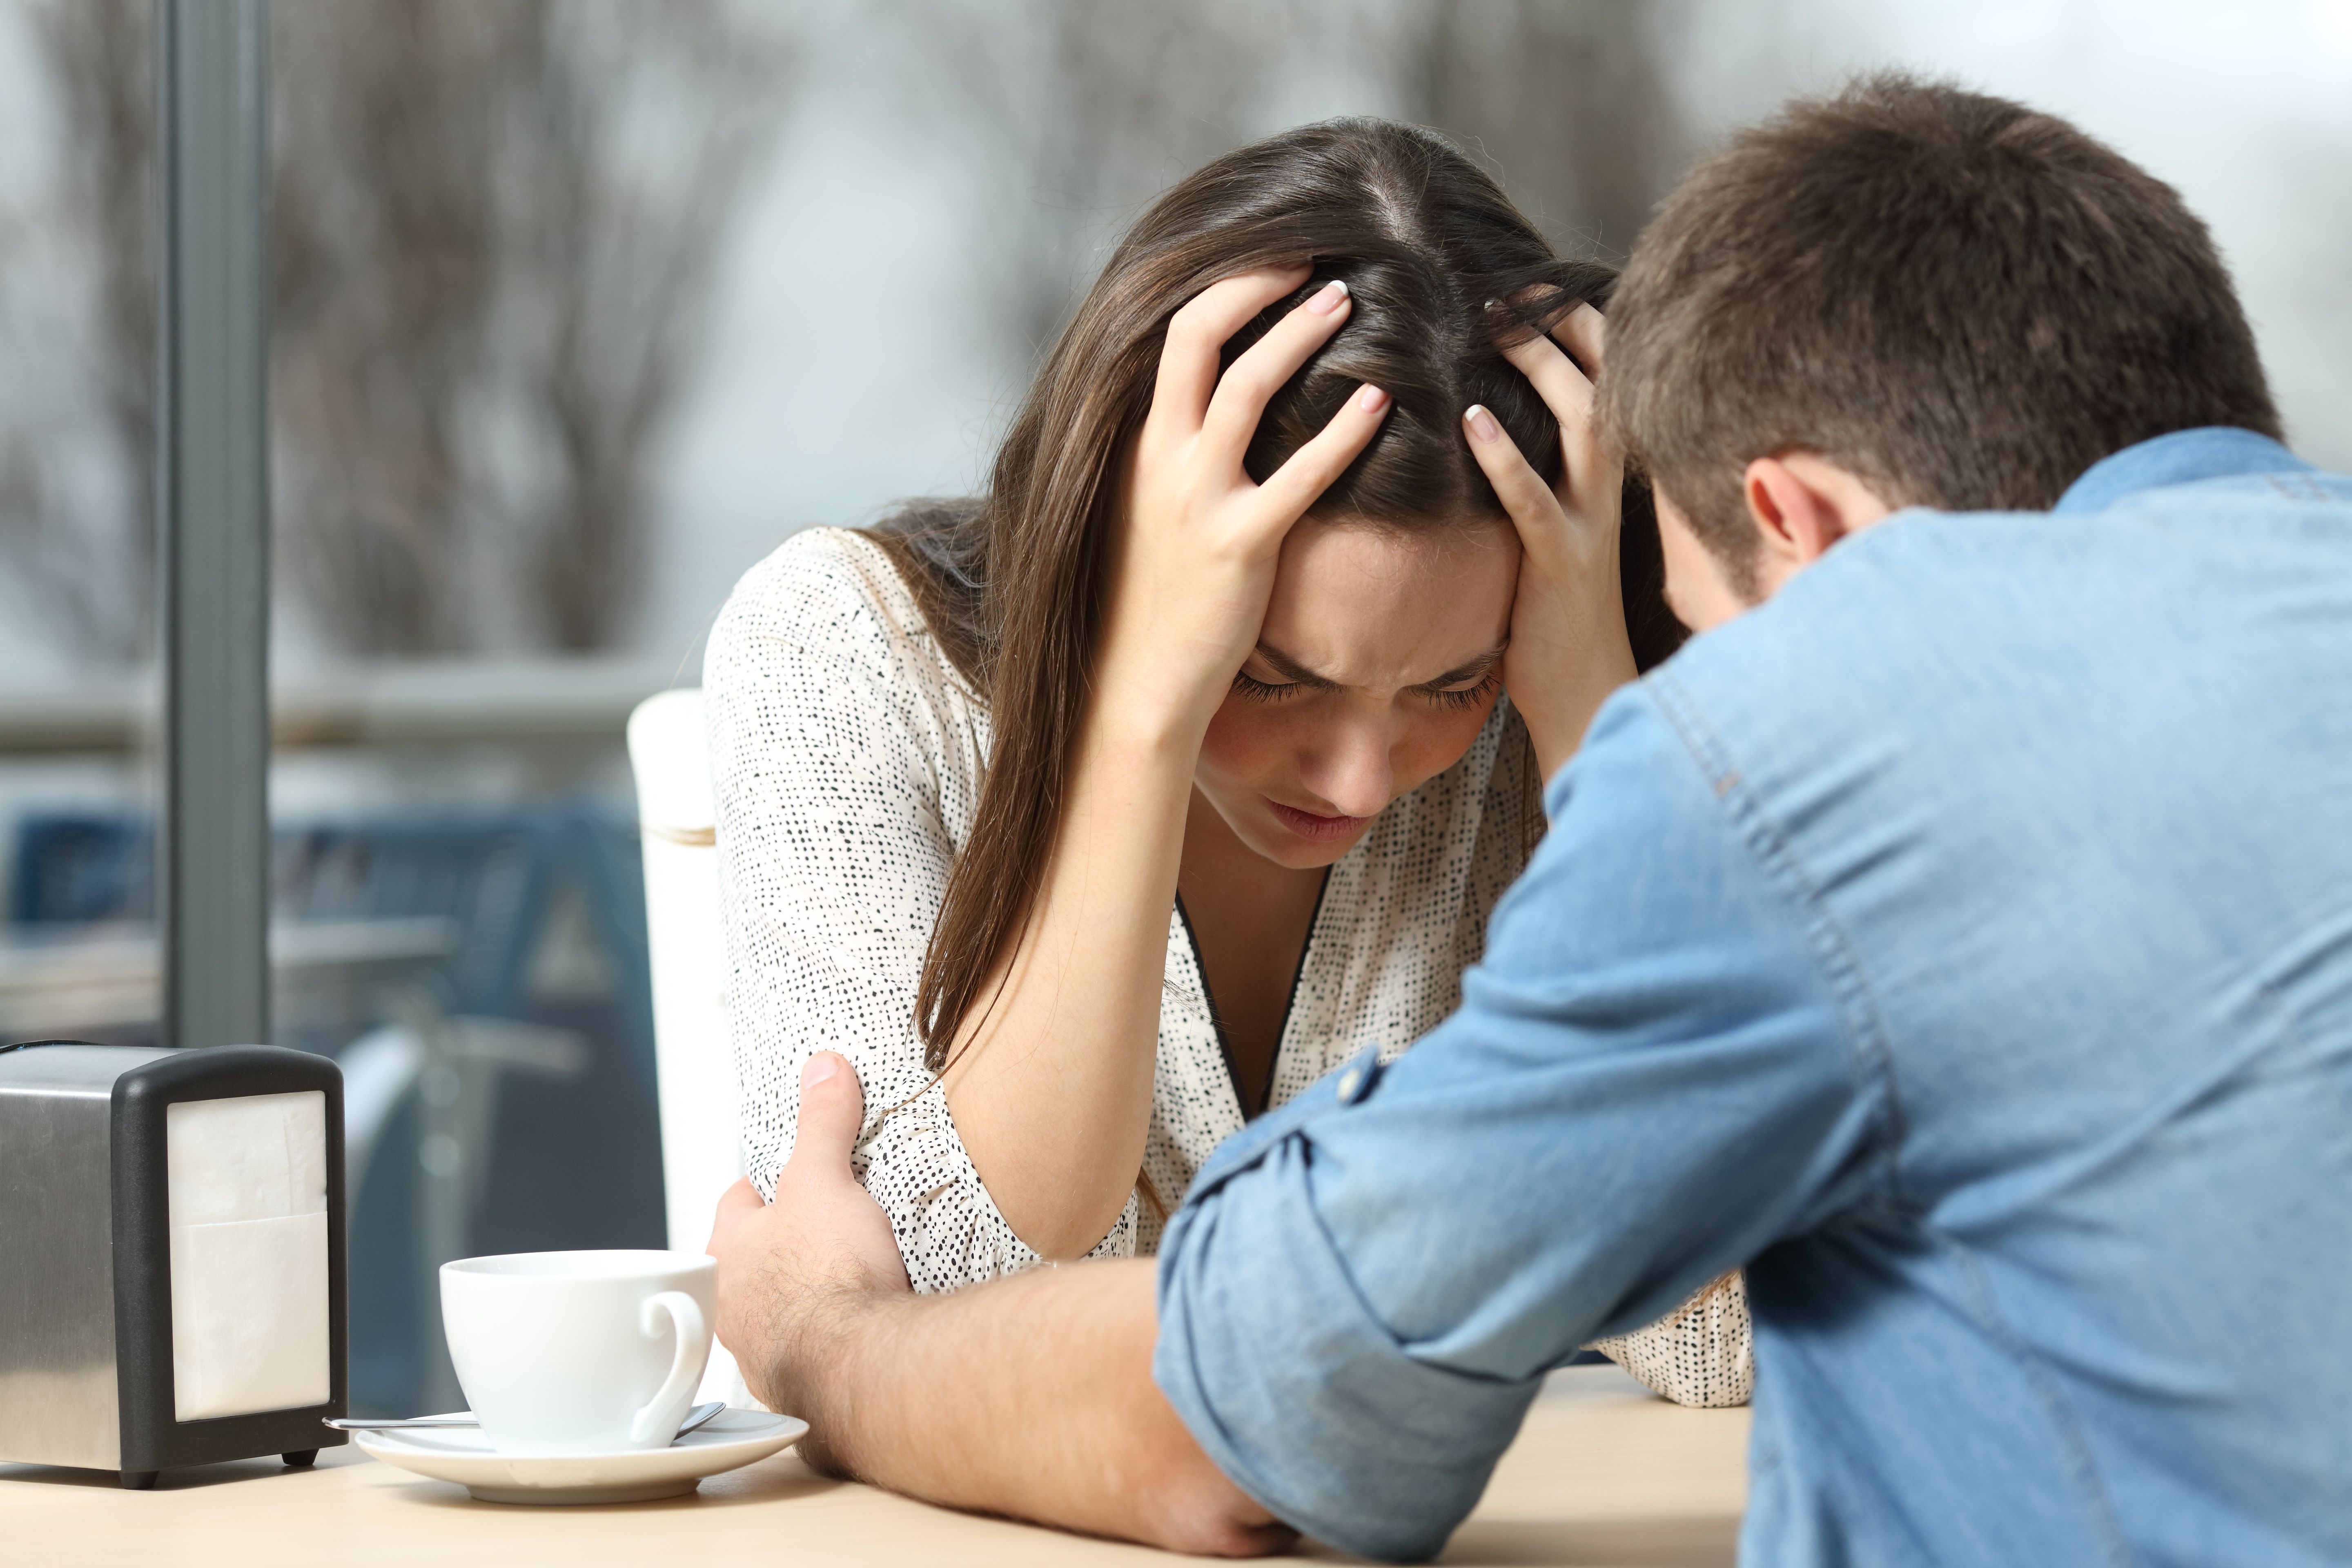 A couple talking on the table.   Source: Shutterstock